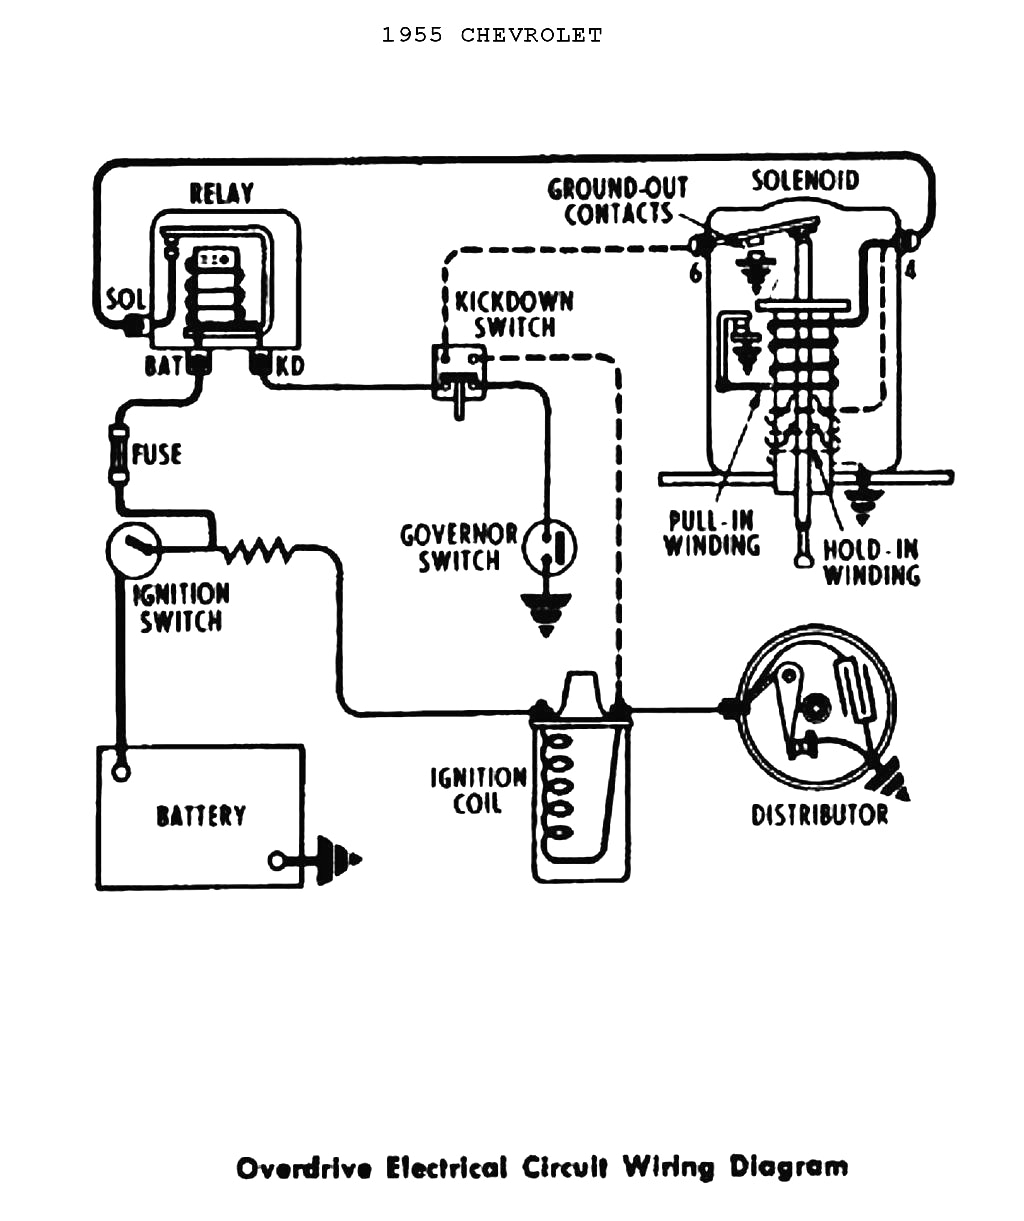 spark plug wiring diagram chevy 350 Collection-Chevy 350 Wiring Diagram To Distributor In 4352f3a606dc494a Pleasing And 3-q